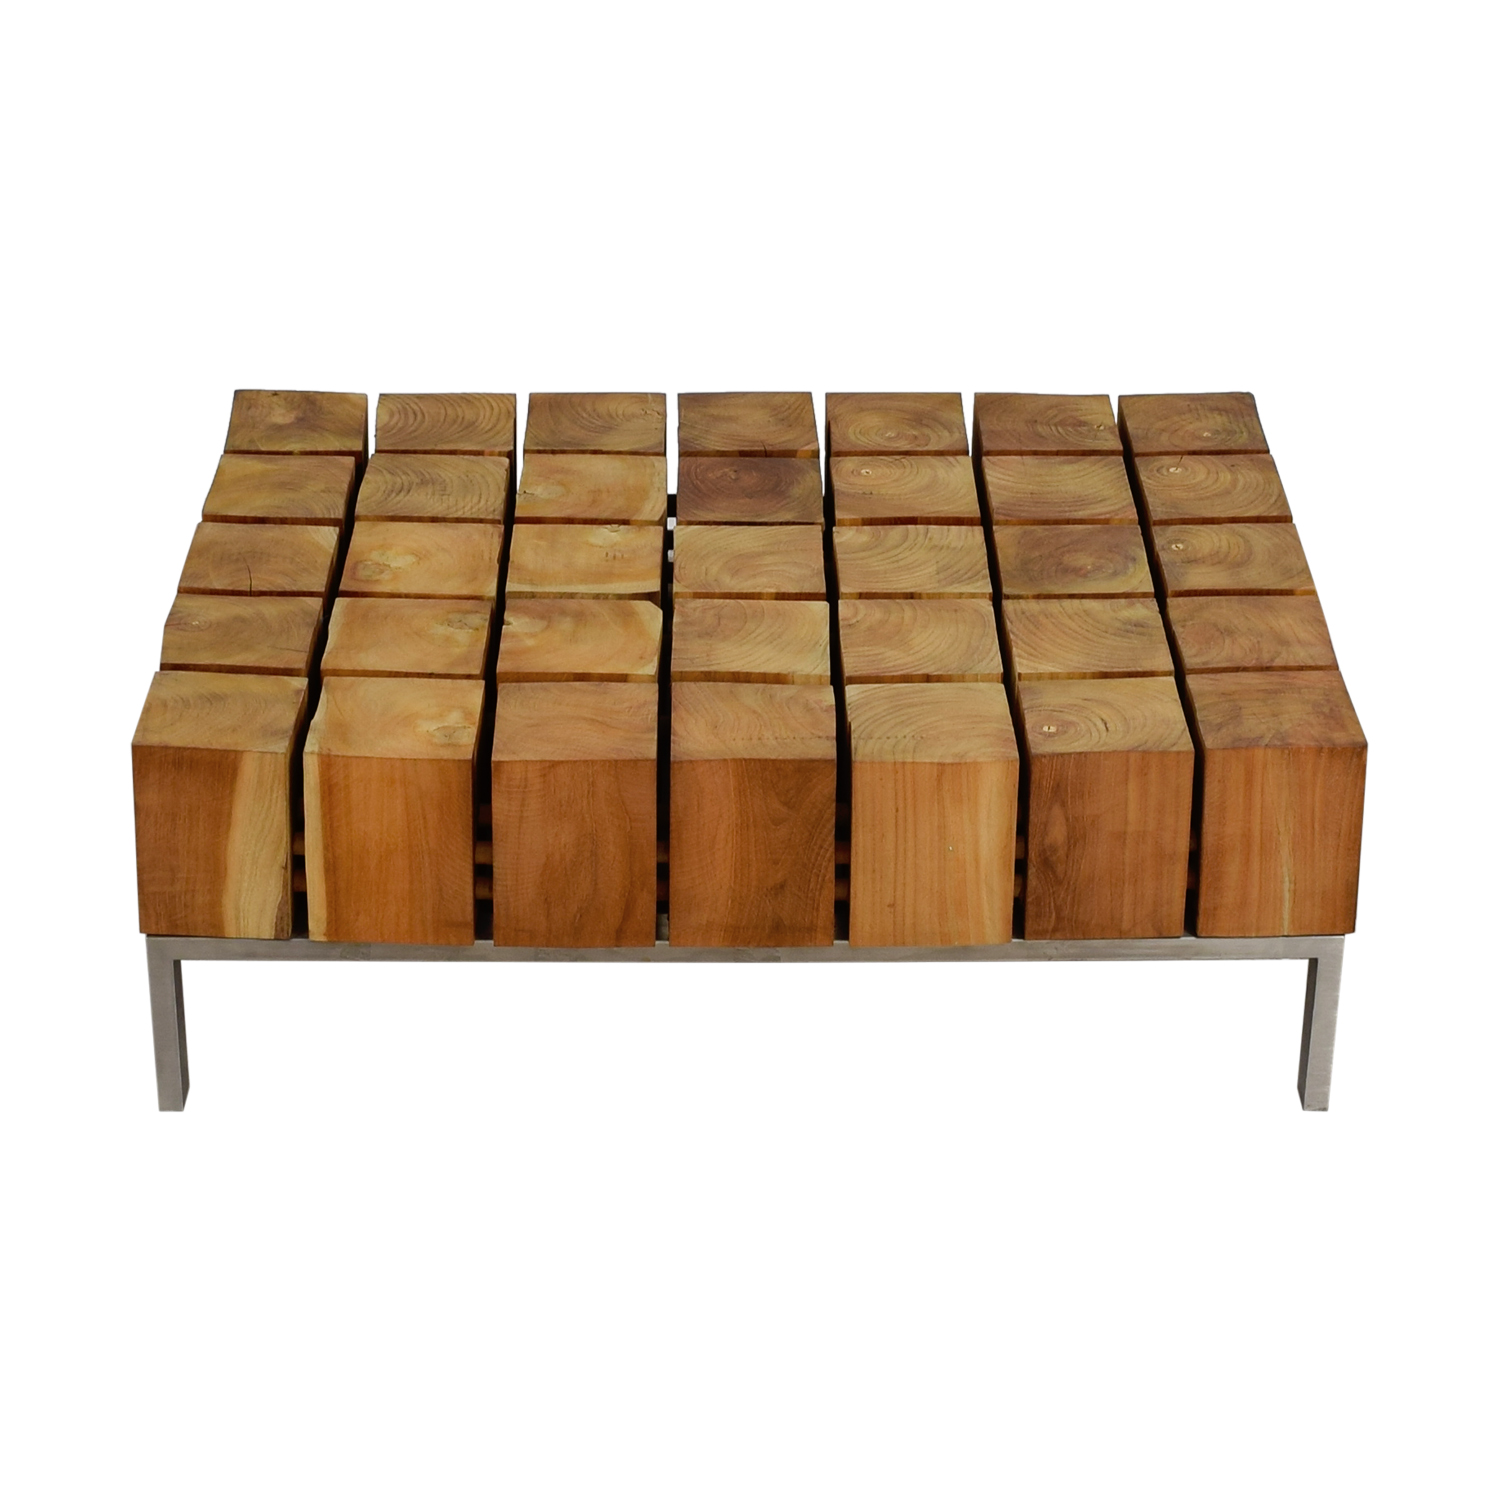 Zientte Zientte Mondo Cubed Wood Coffee Table nj